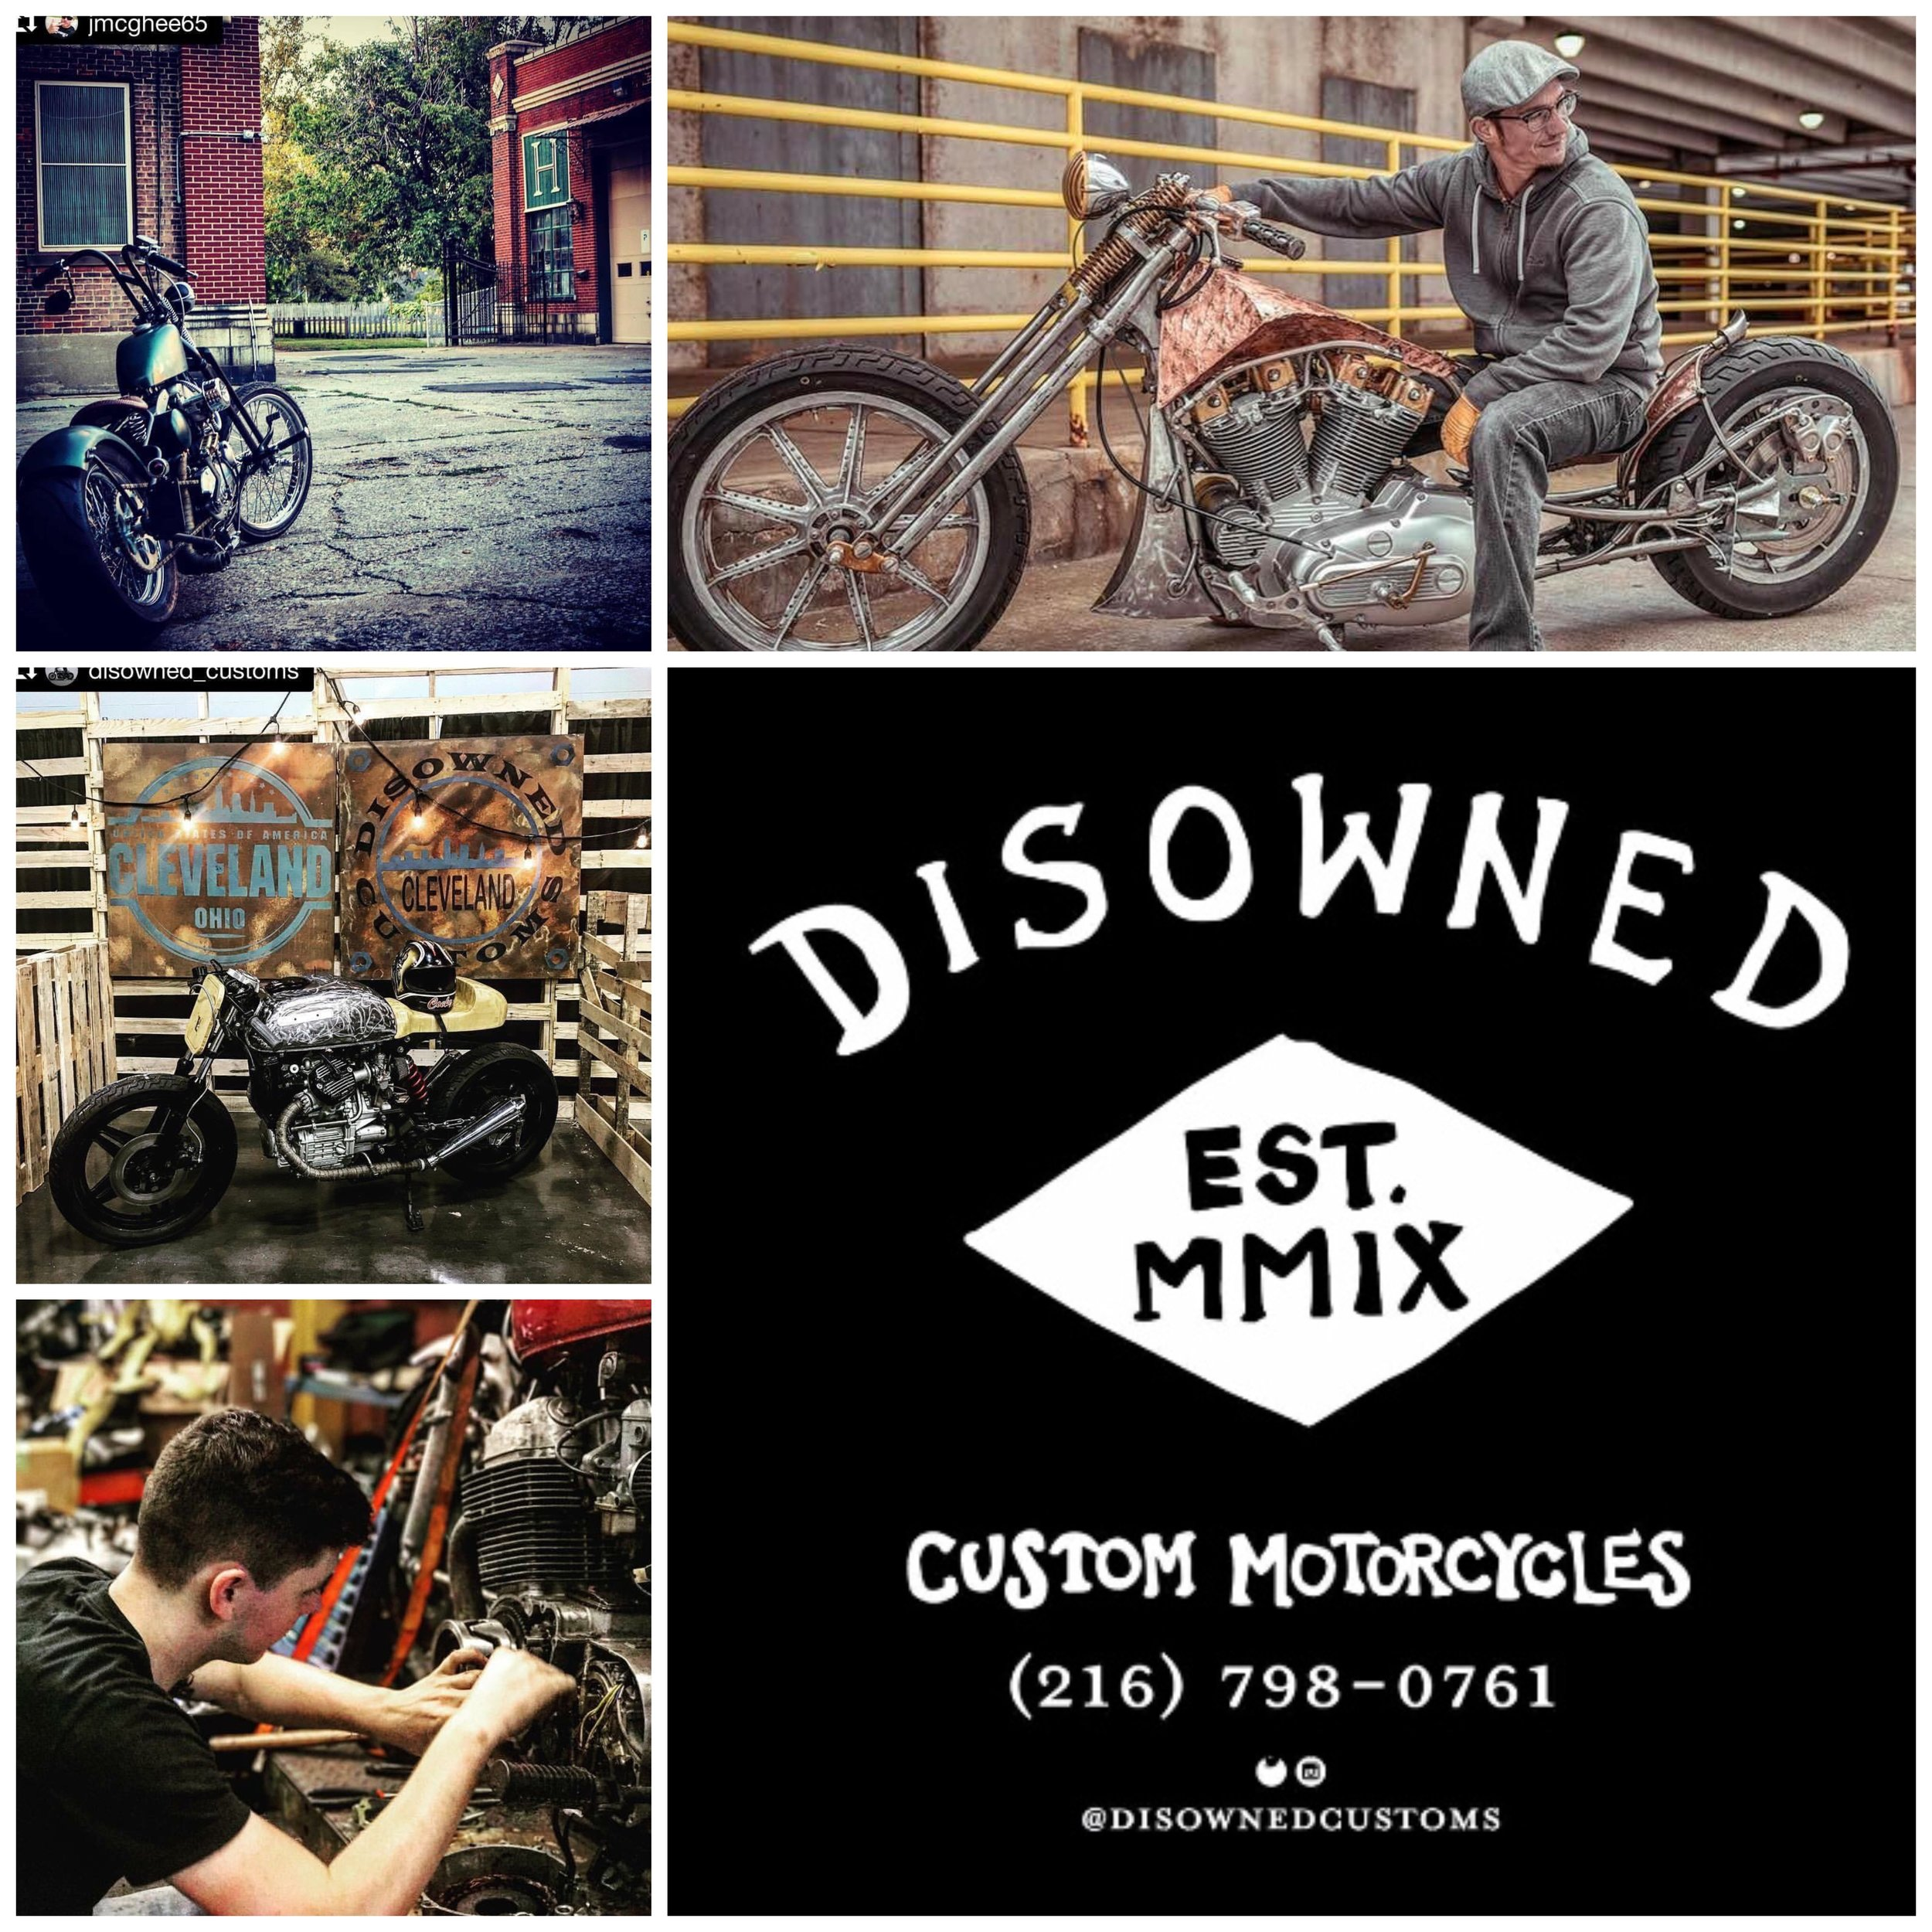 Disowned Customs